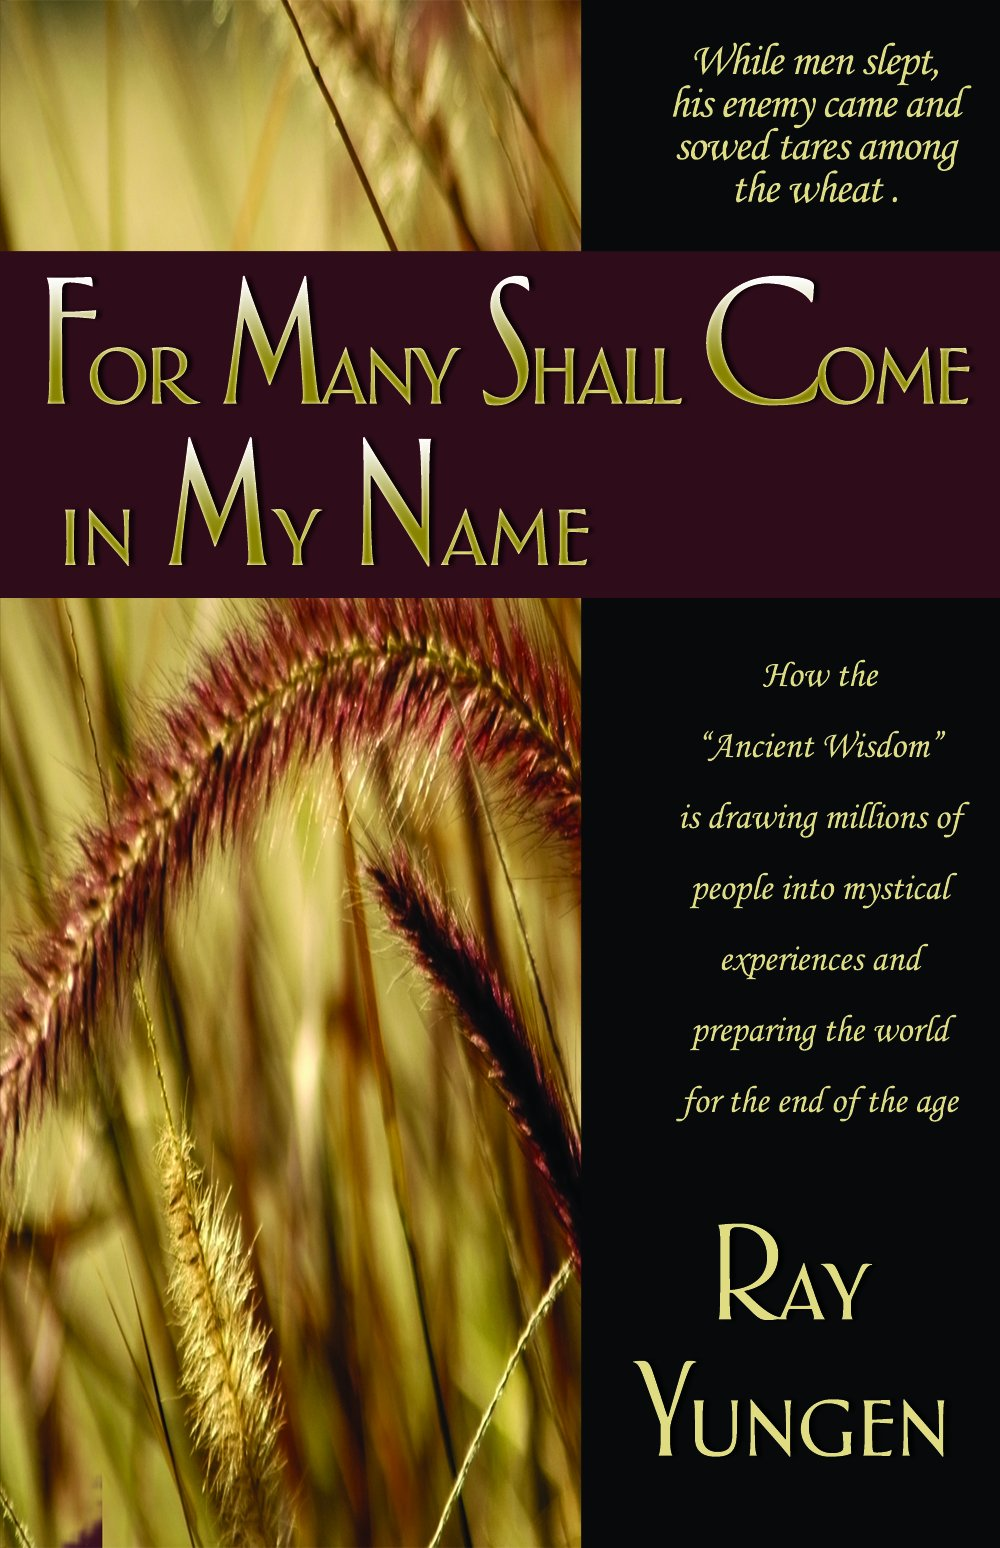 Download For Many Shall Come in my Name: How the Ancient Wisdom is drawing millions of people into mystical experiences and preparing the world for the end of the age PDF